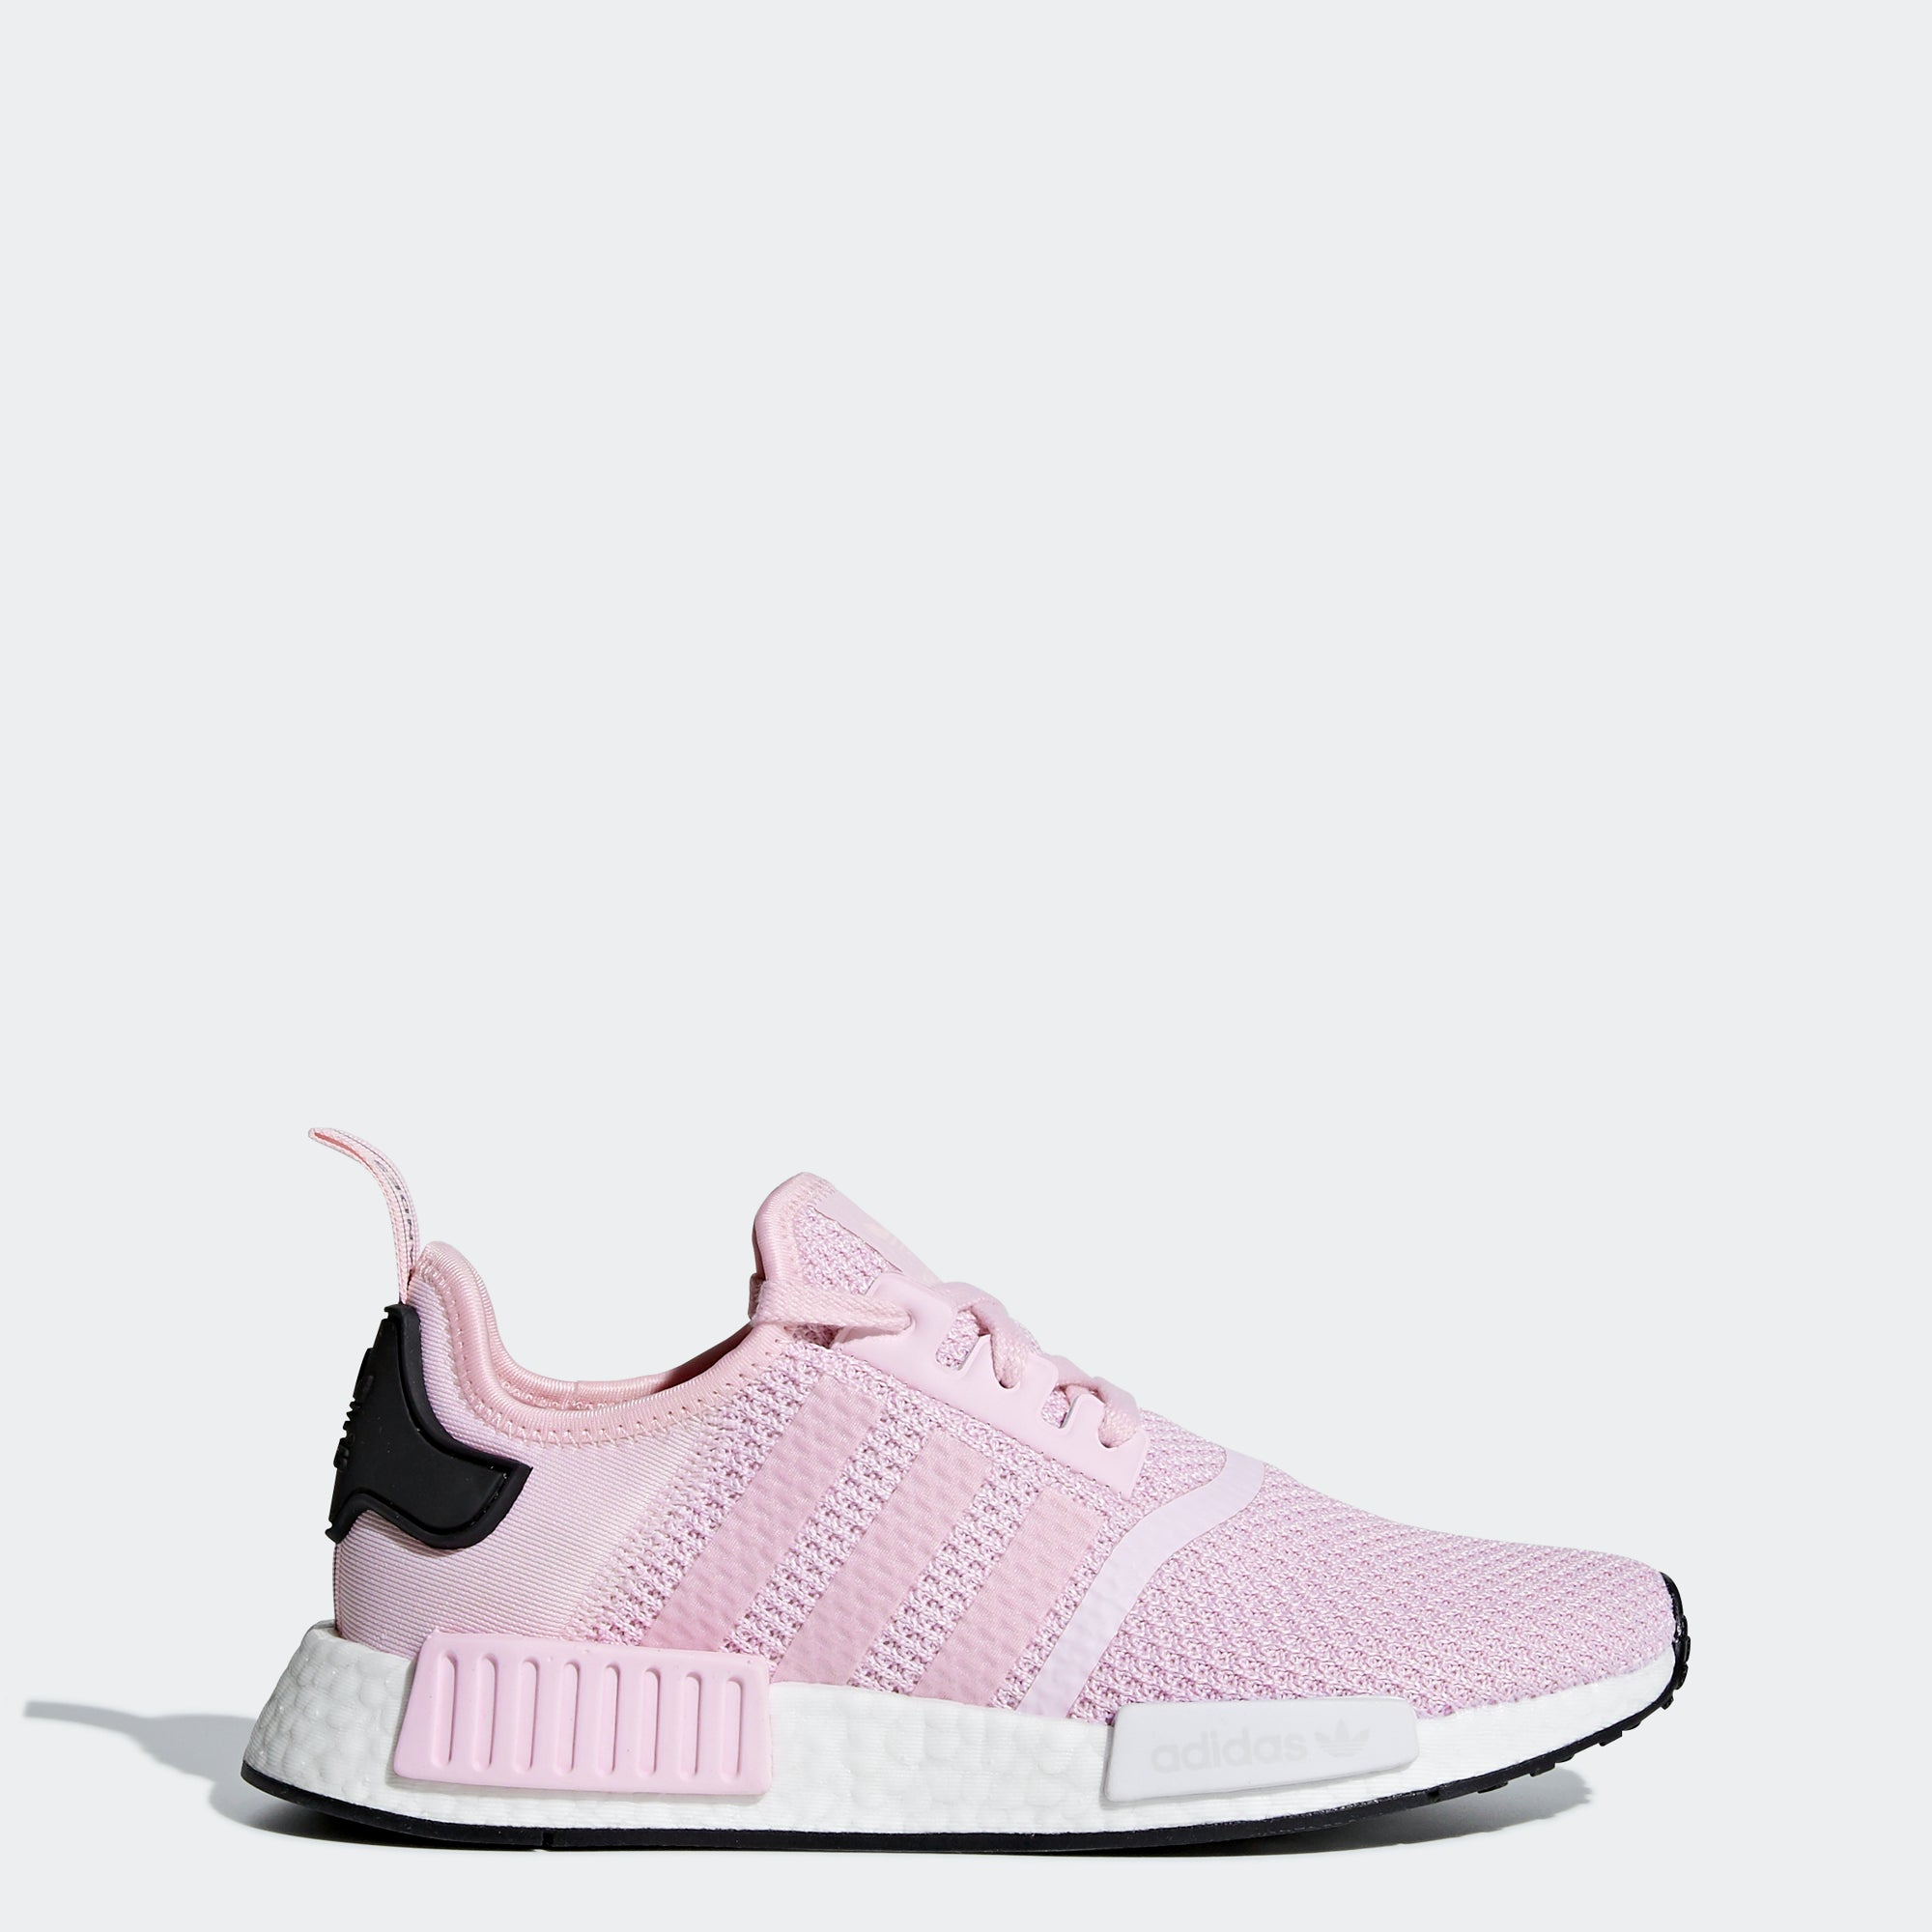 dd404944141f5 Women s adidas Originals NMD R1 Shoes Clear Pink